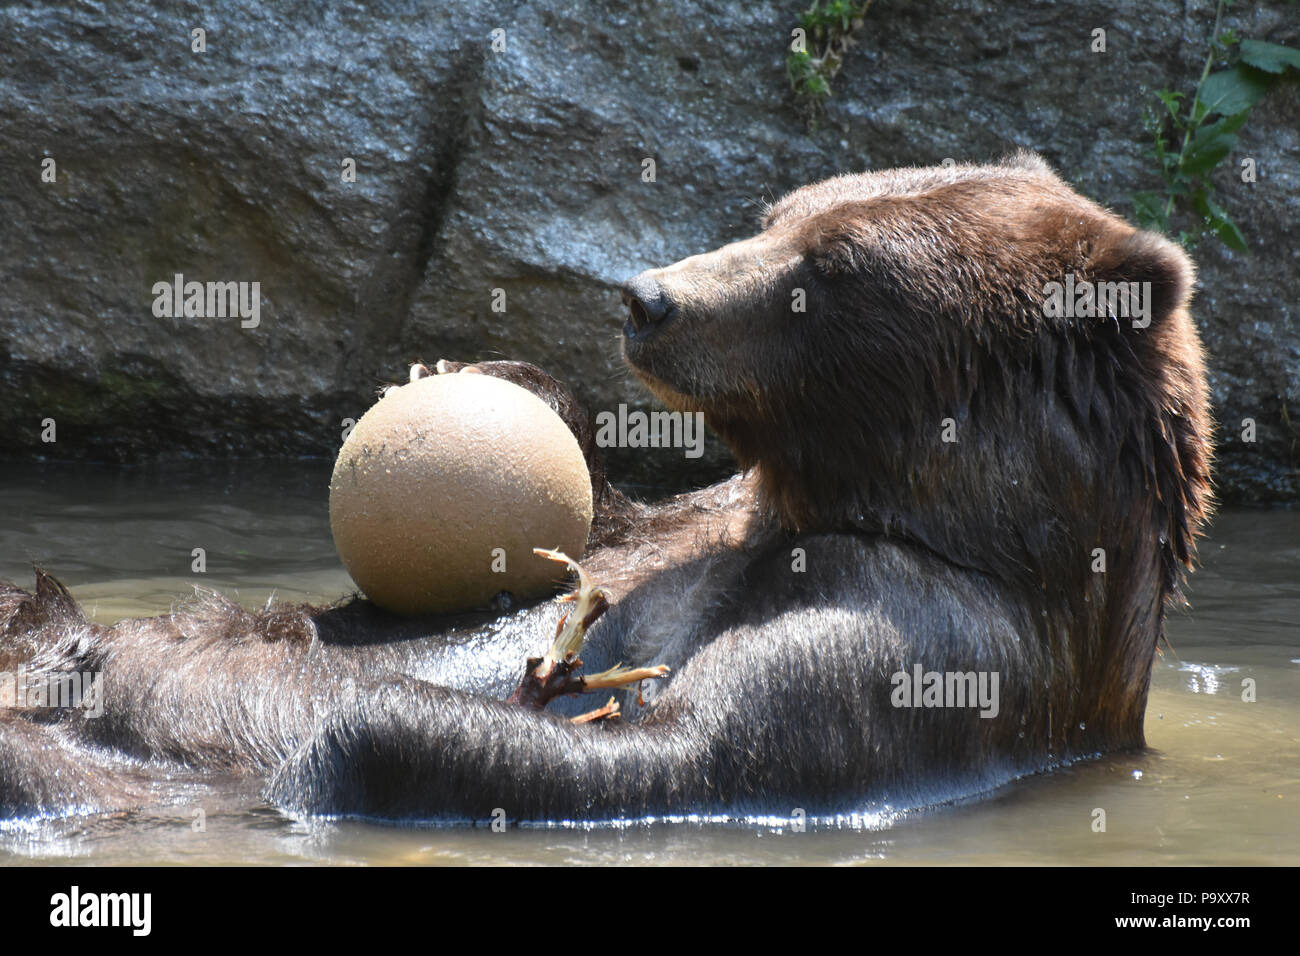 Silvertip grizzly playing with a ball in the water - Stock Image